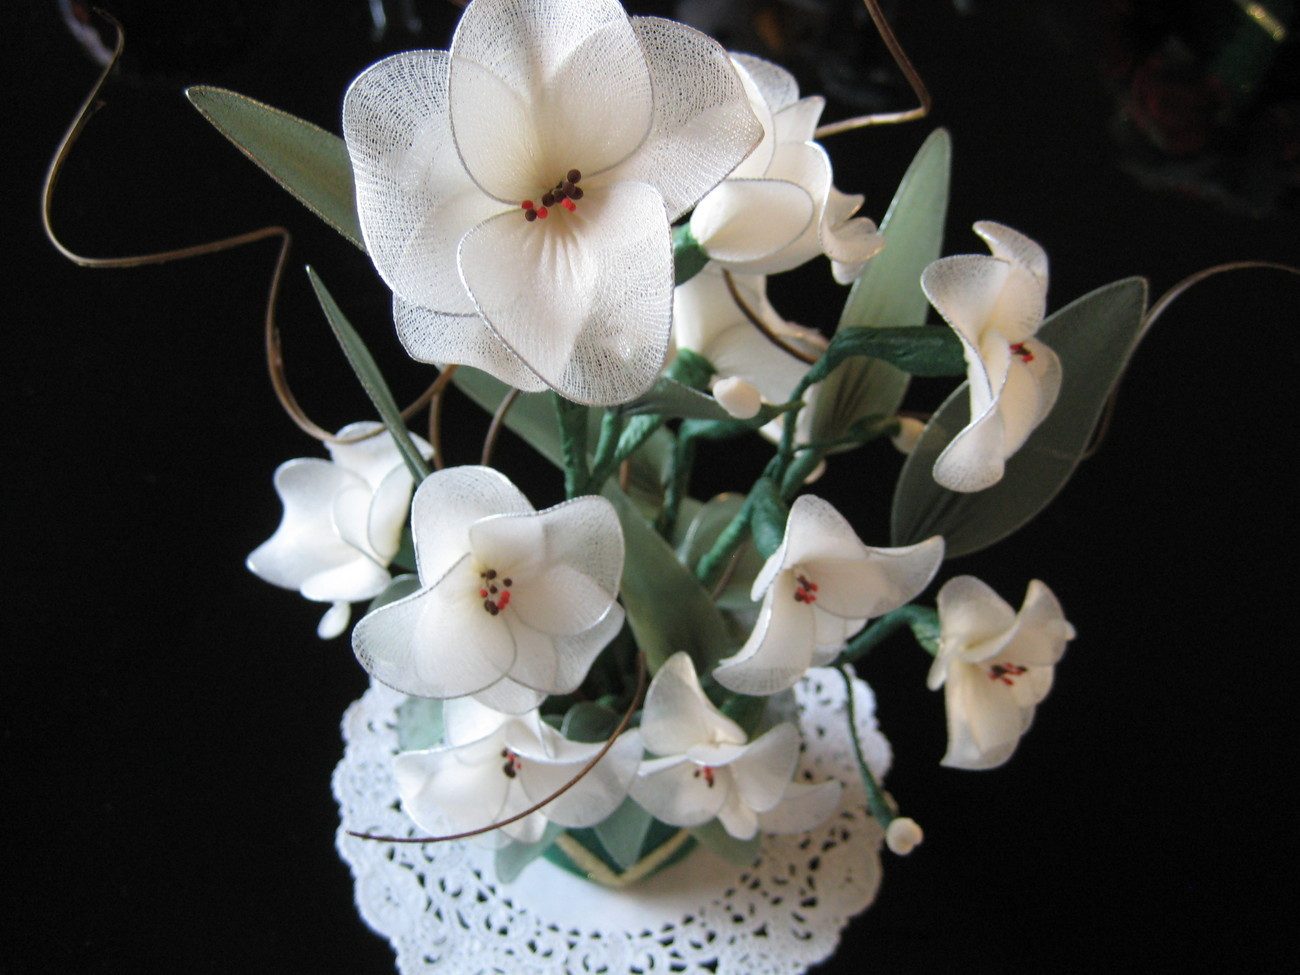 Vintage Floral Center Piece - white handmade nylon flowers - Unique Gift Idea  Bonanza